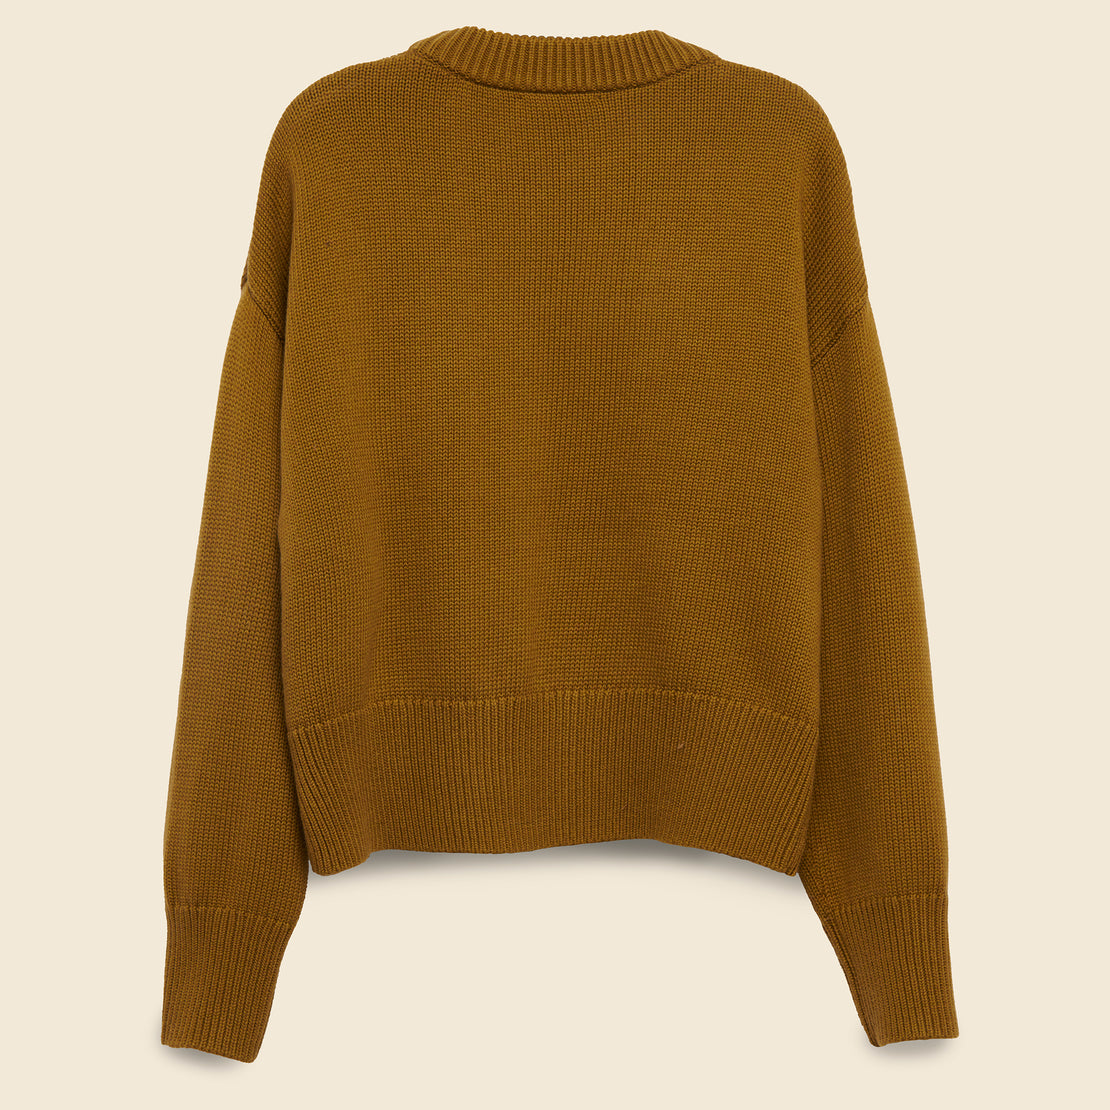 Cozy Crewneck Sweater - Mustard